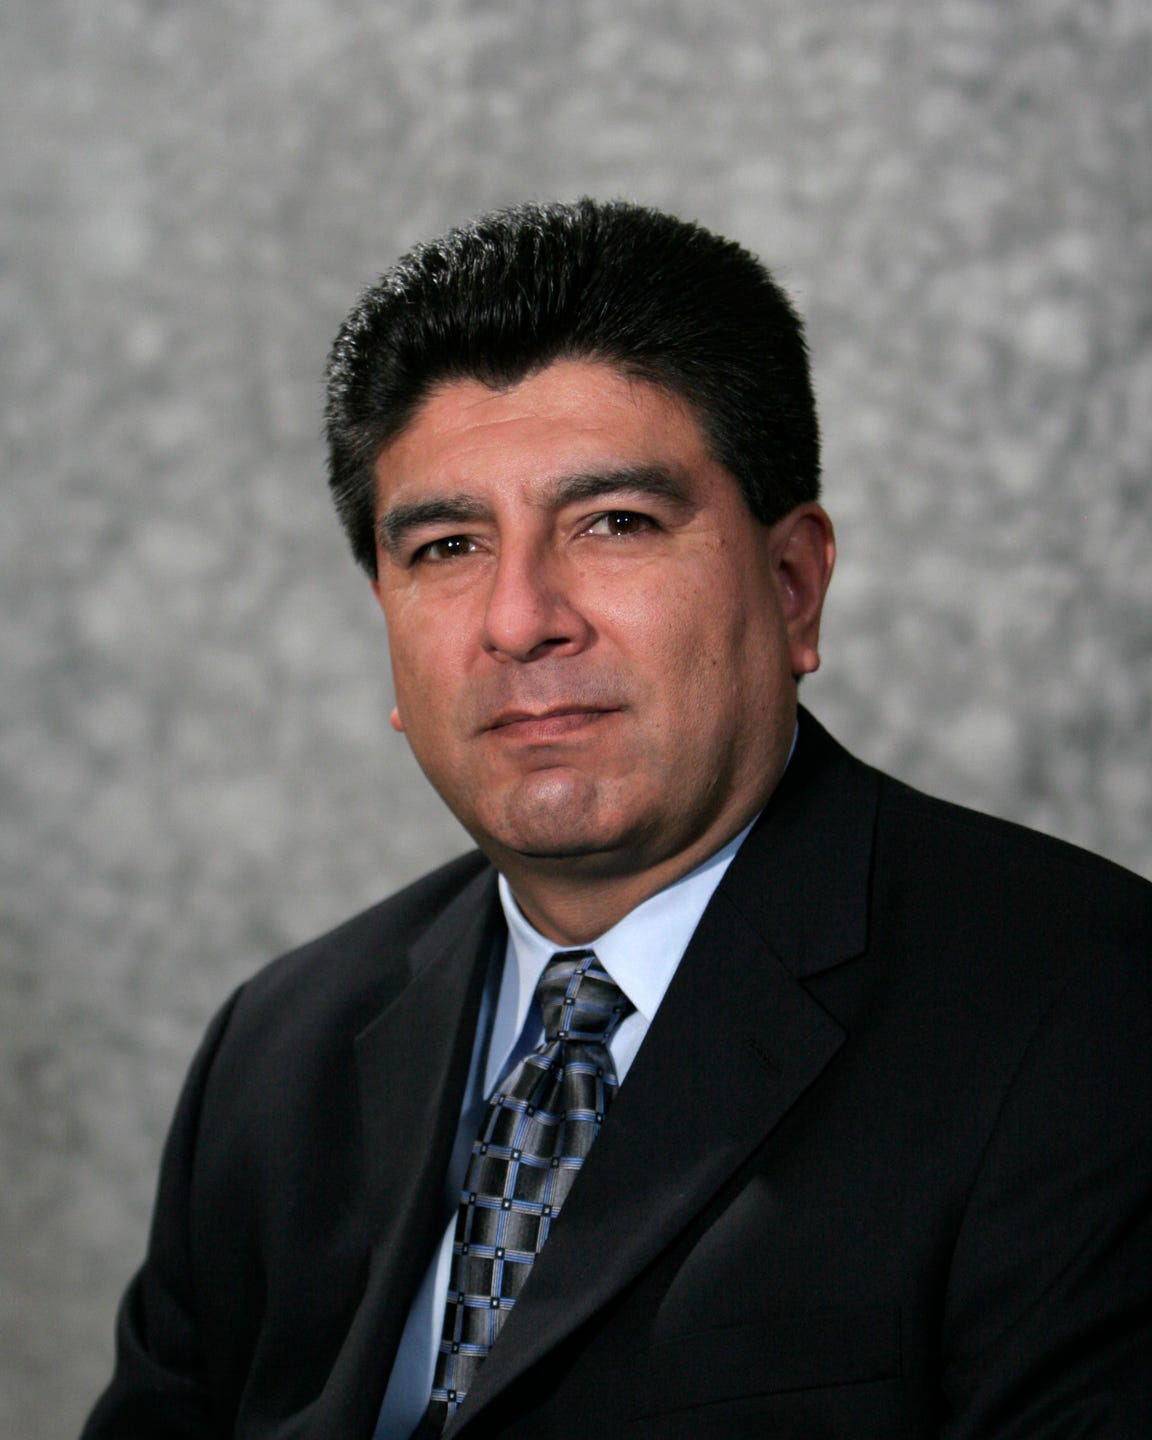 Corpus Christi City Council District 5 candidate Carlos Torres